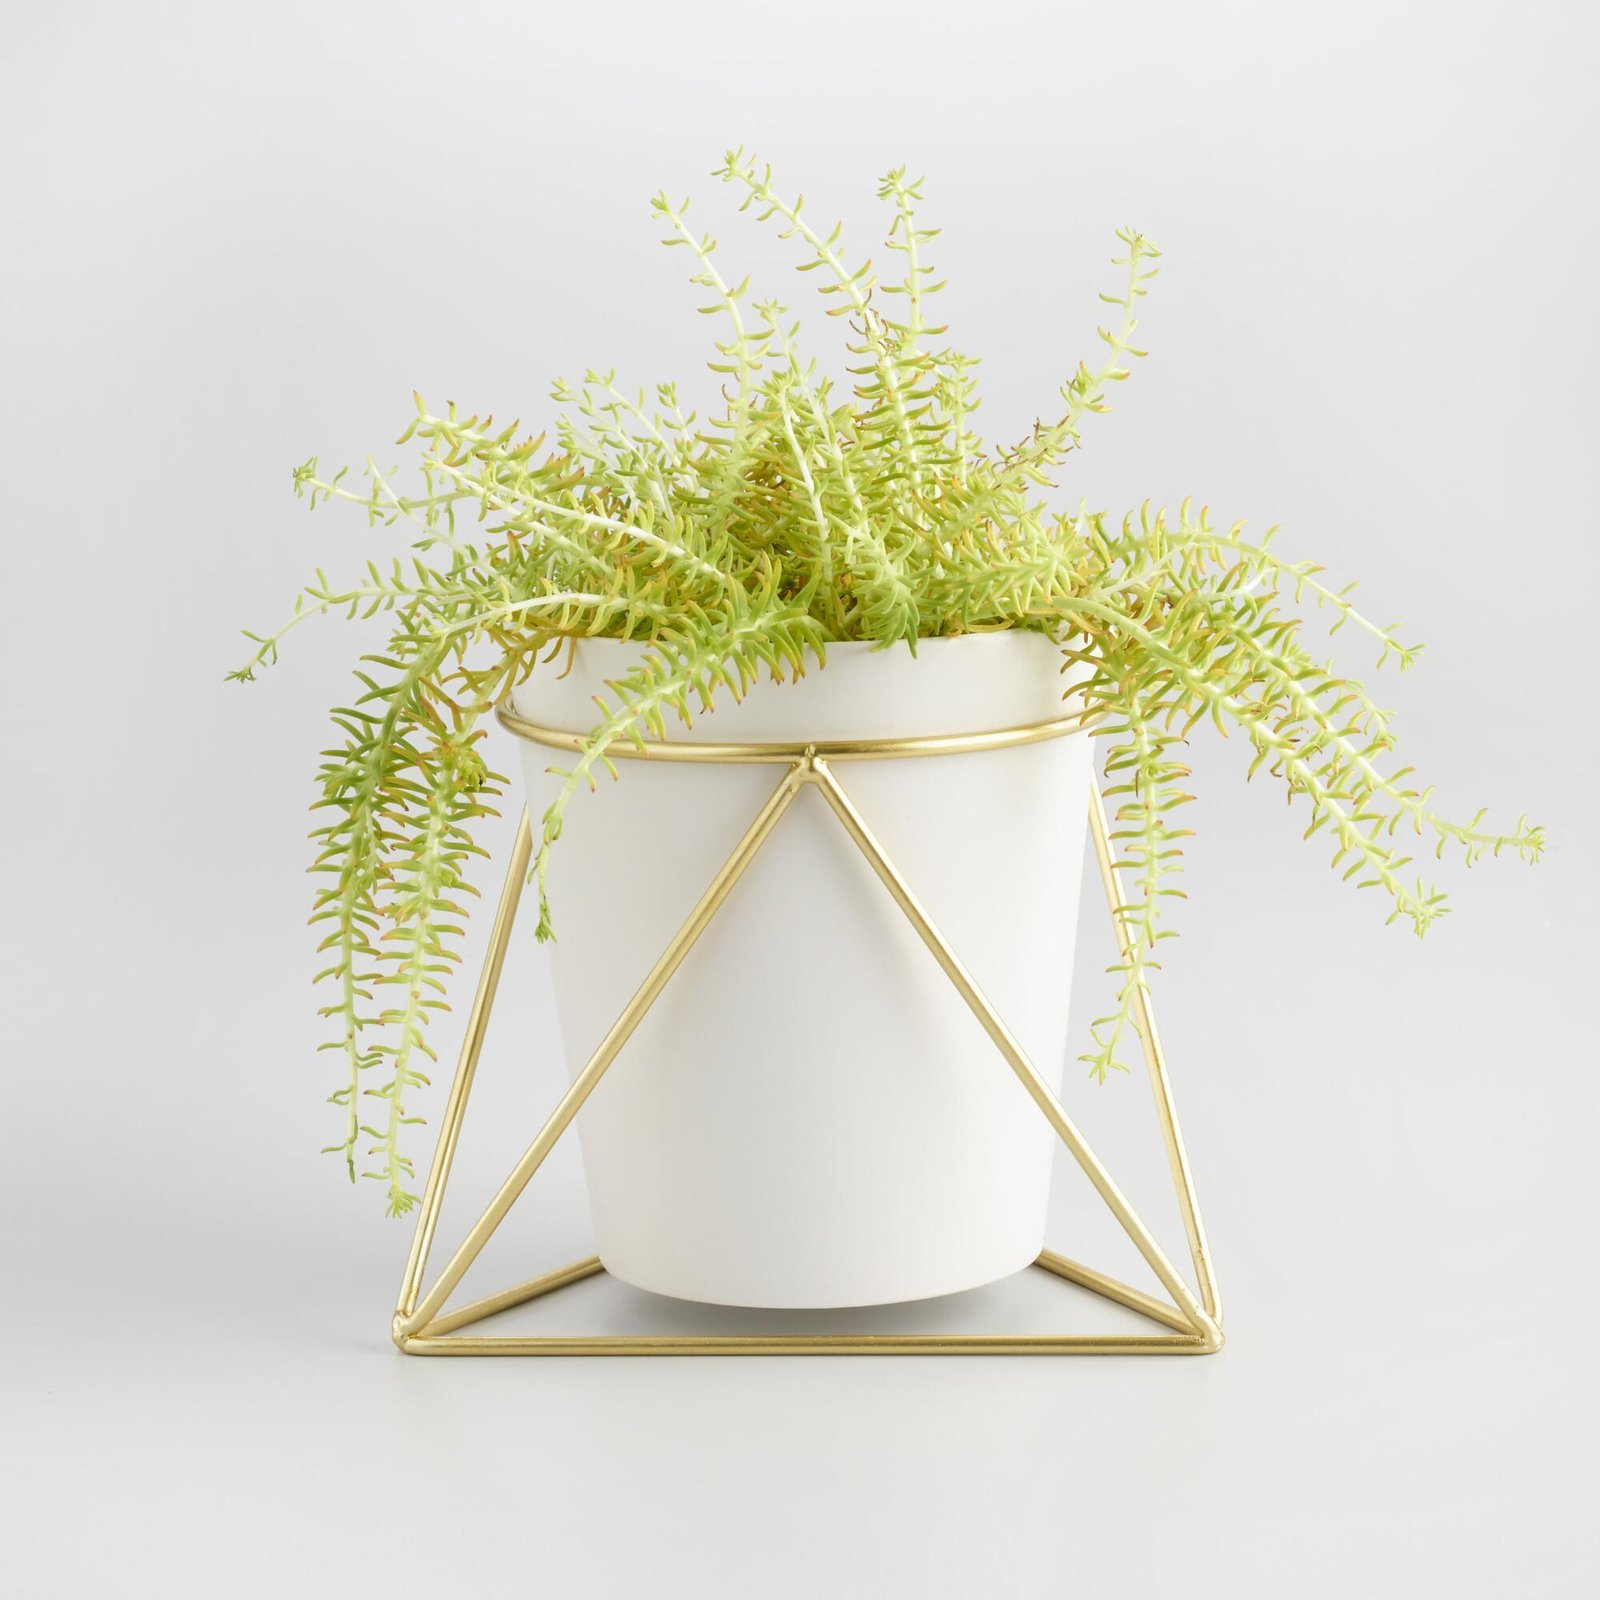 World market gold geometric stand and white vase by cost plus world market gold geometric stand and white vase by cost plus world market dwell reviewsmspy